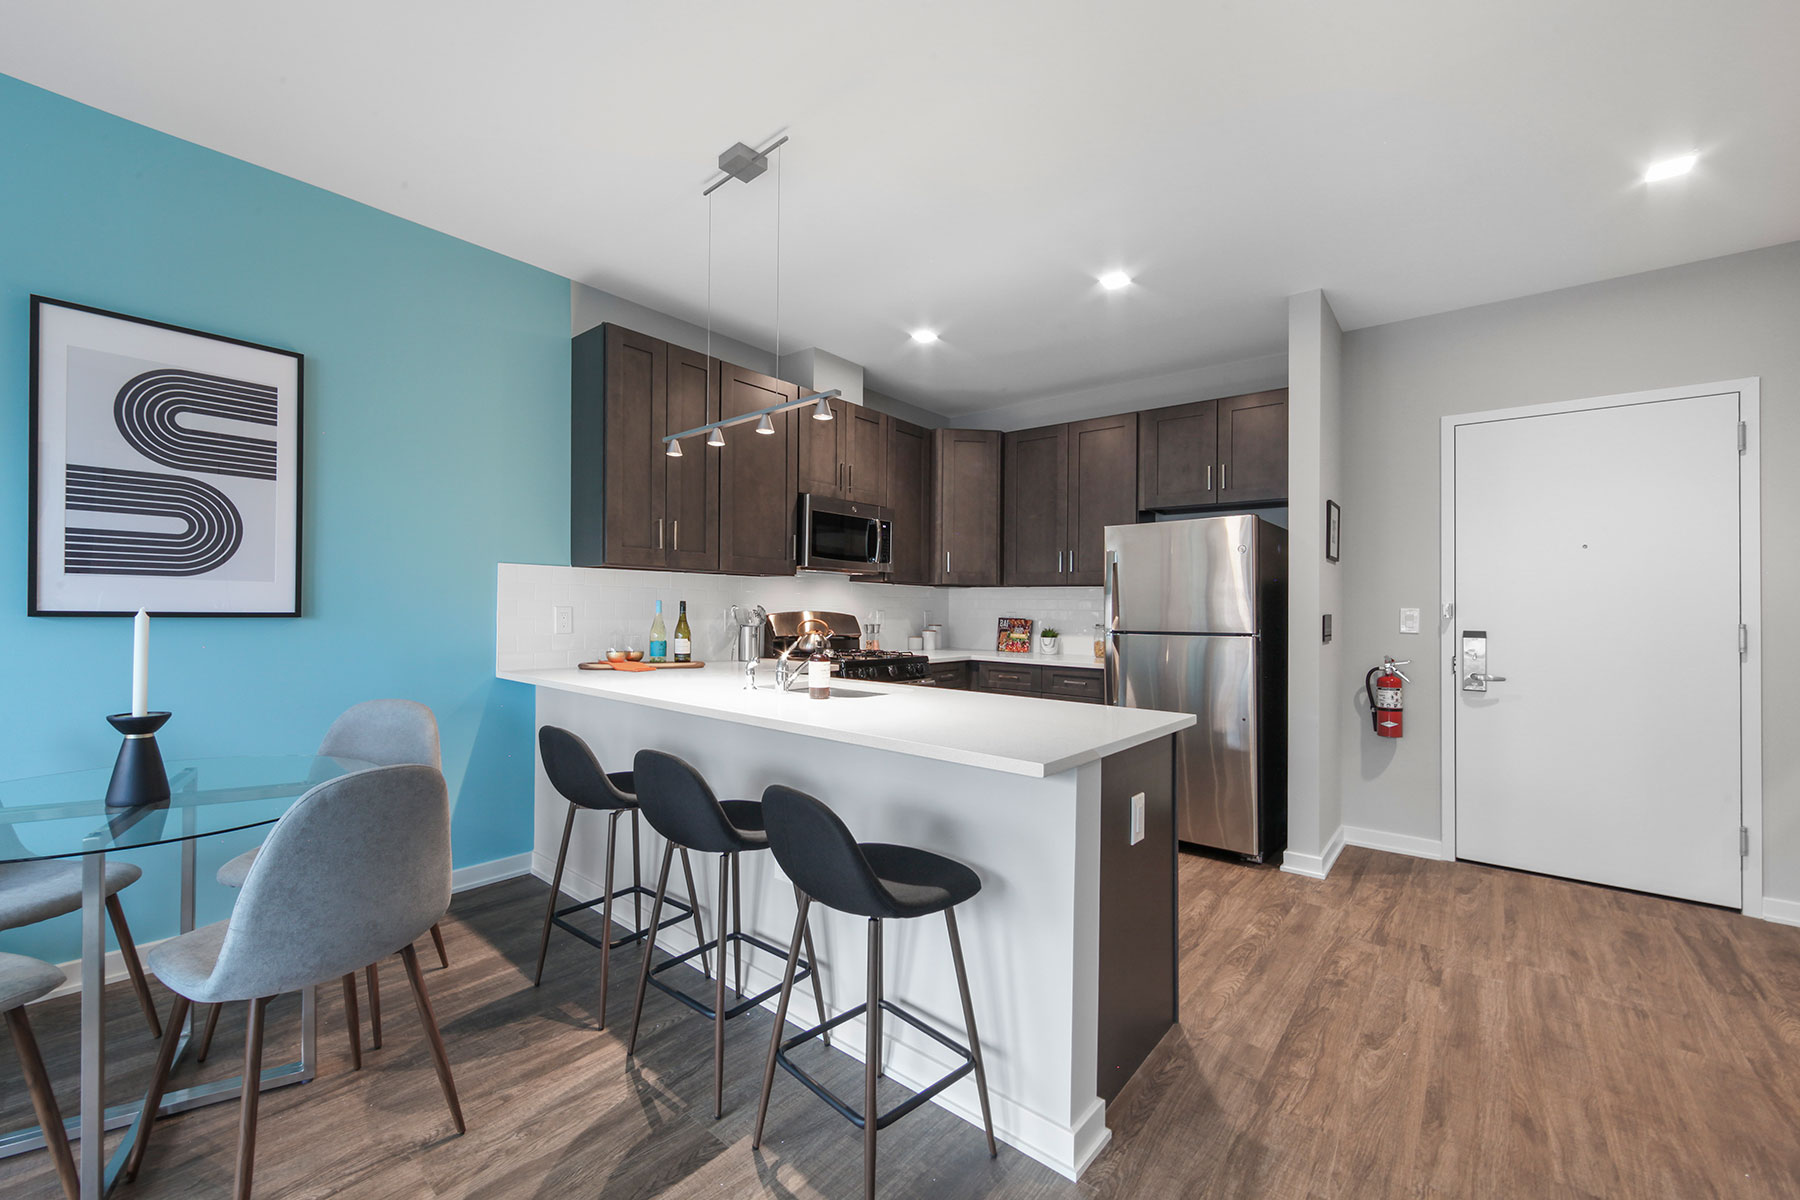 Bright modern kitchen and dine in seating near entrance, with barstools at counter, dark wood cabinetry, stainless steel appliances and modern fixtures and wood floors